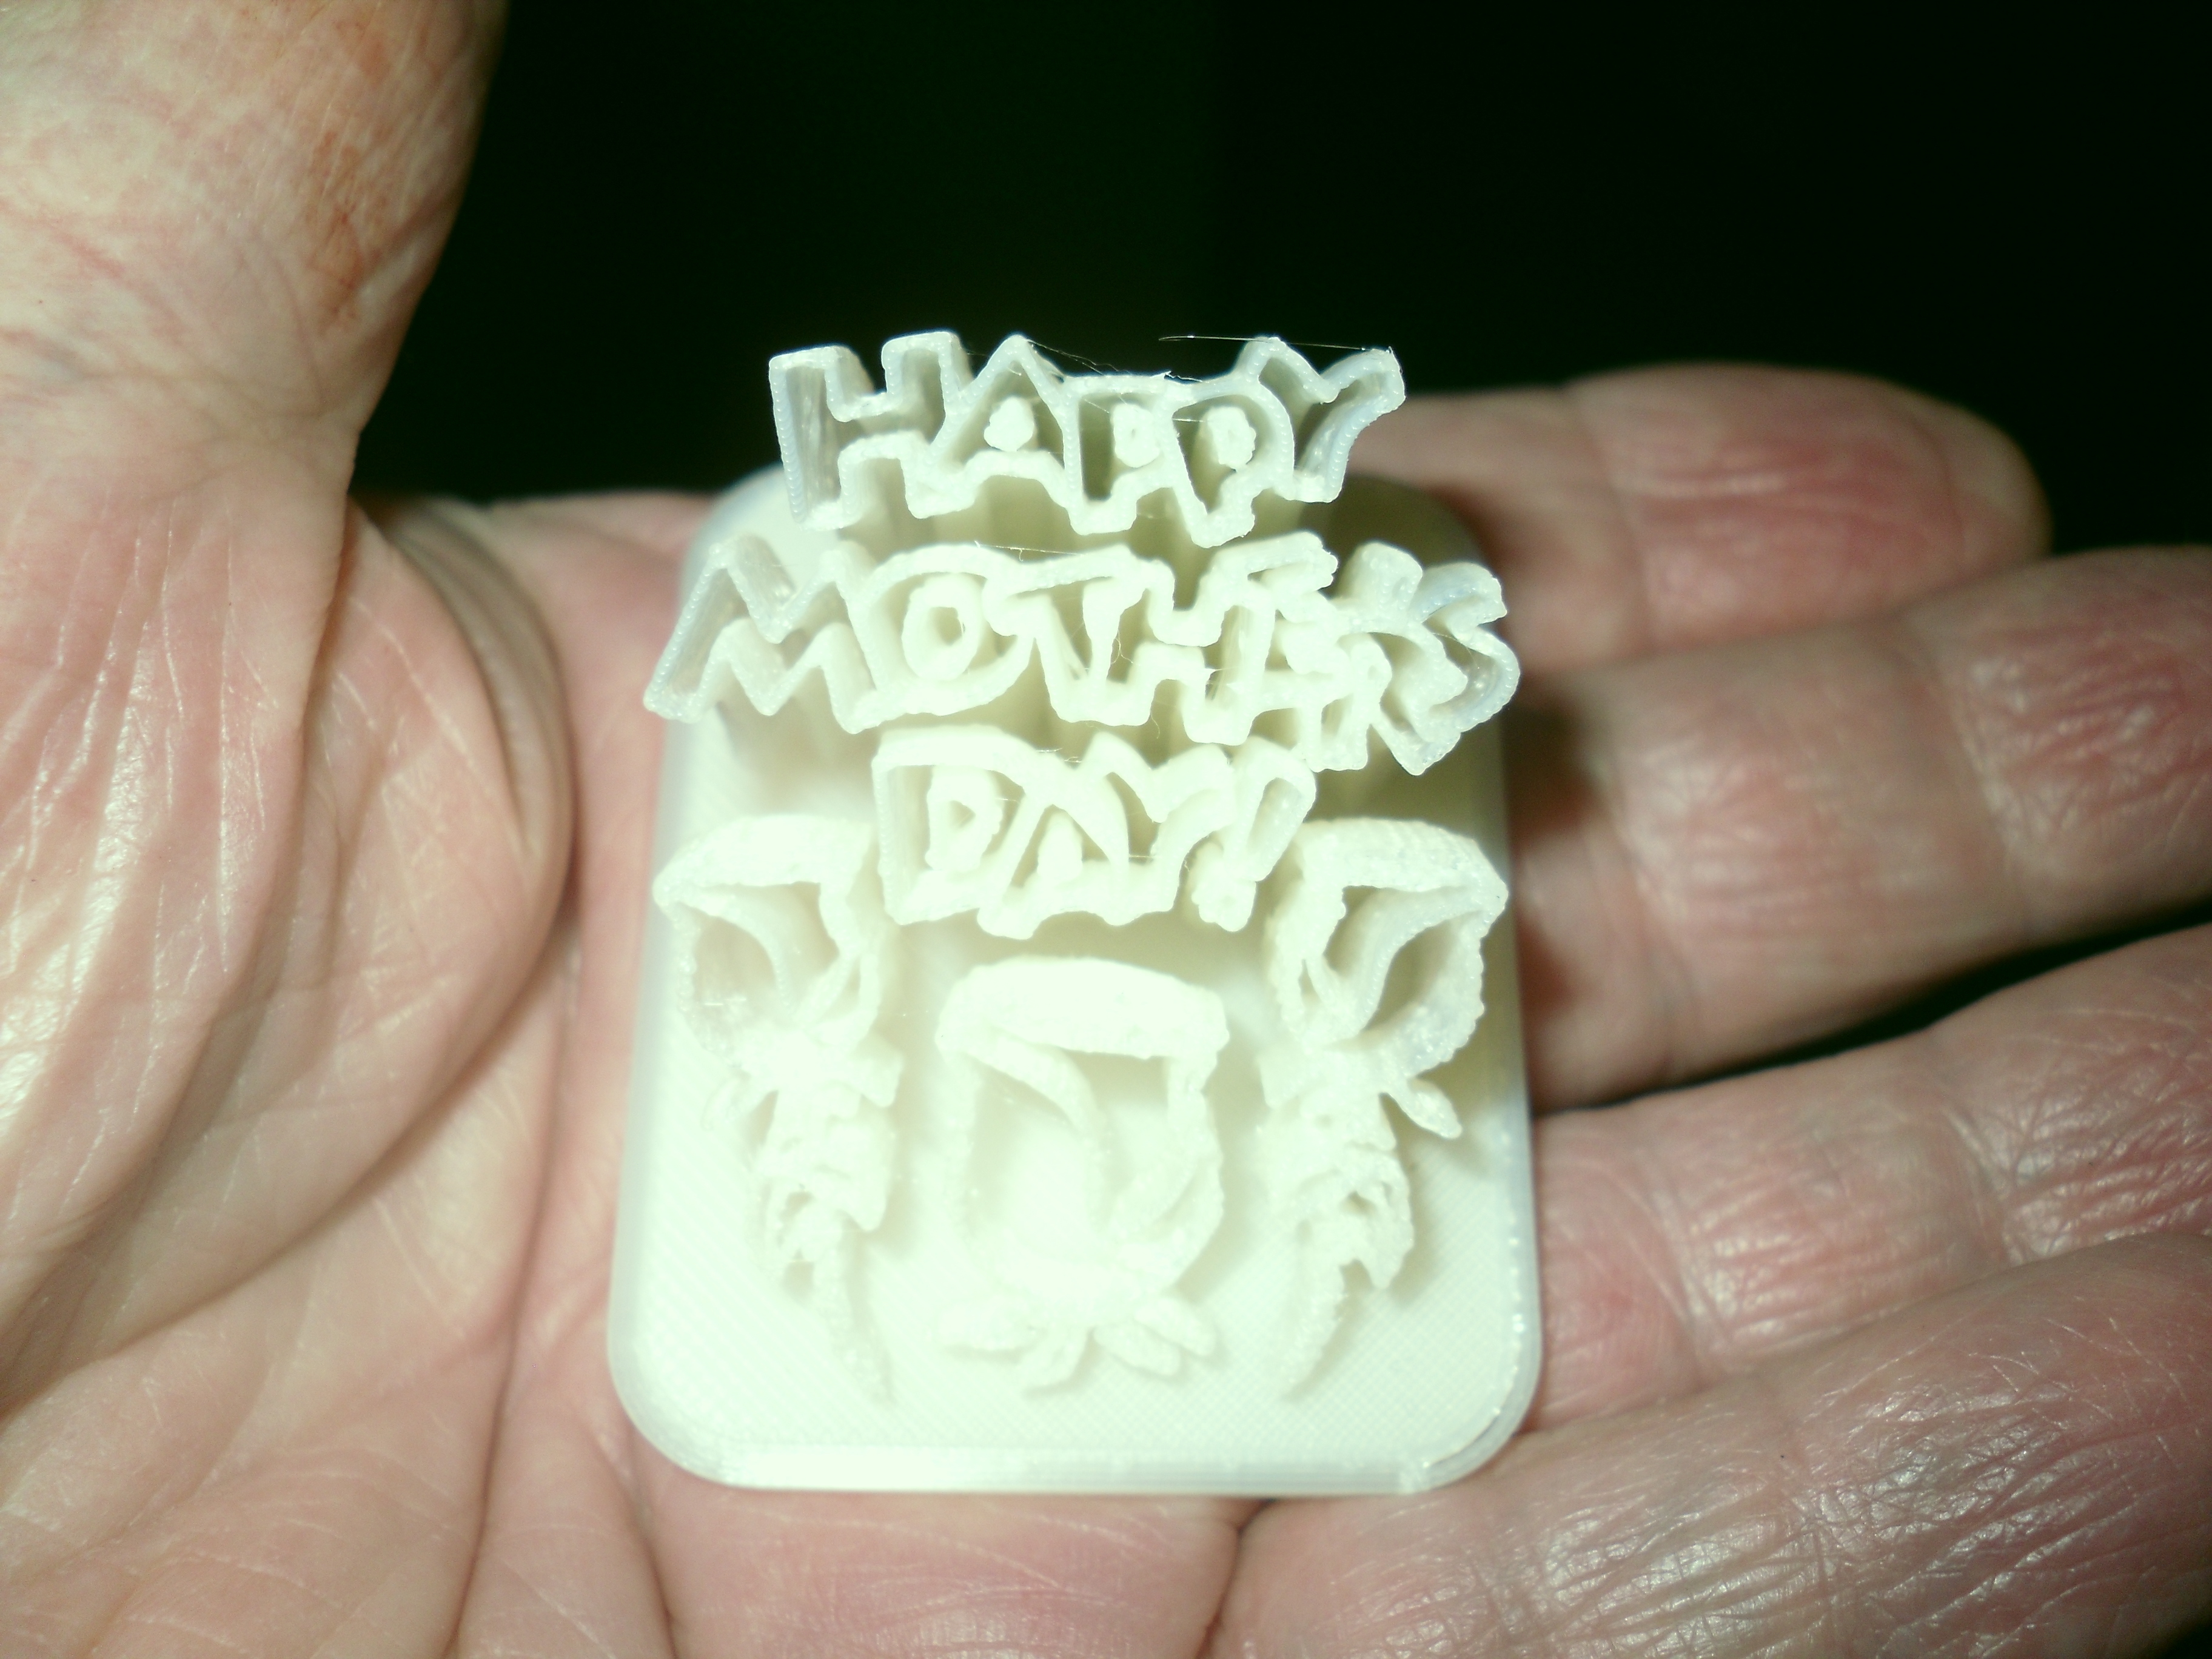 SDC10011.JPG Download free STL file happy mothersday 2 files 1 small 1 large • 3D printing object, liggett1